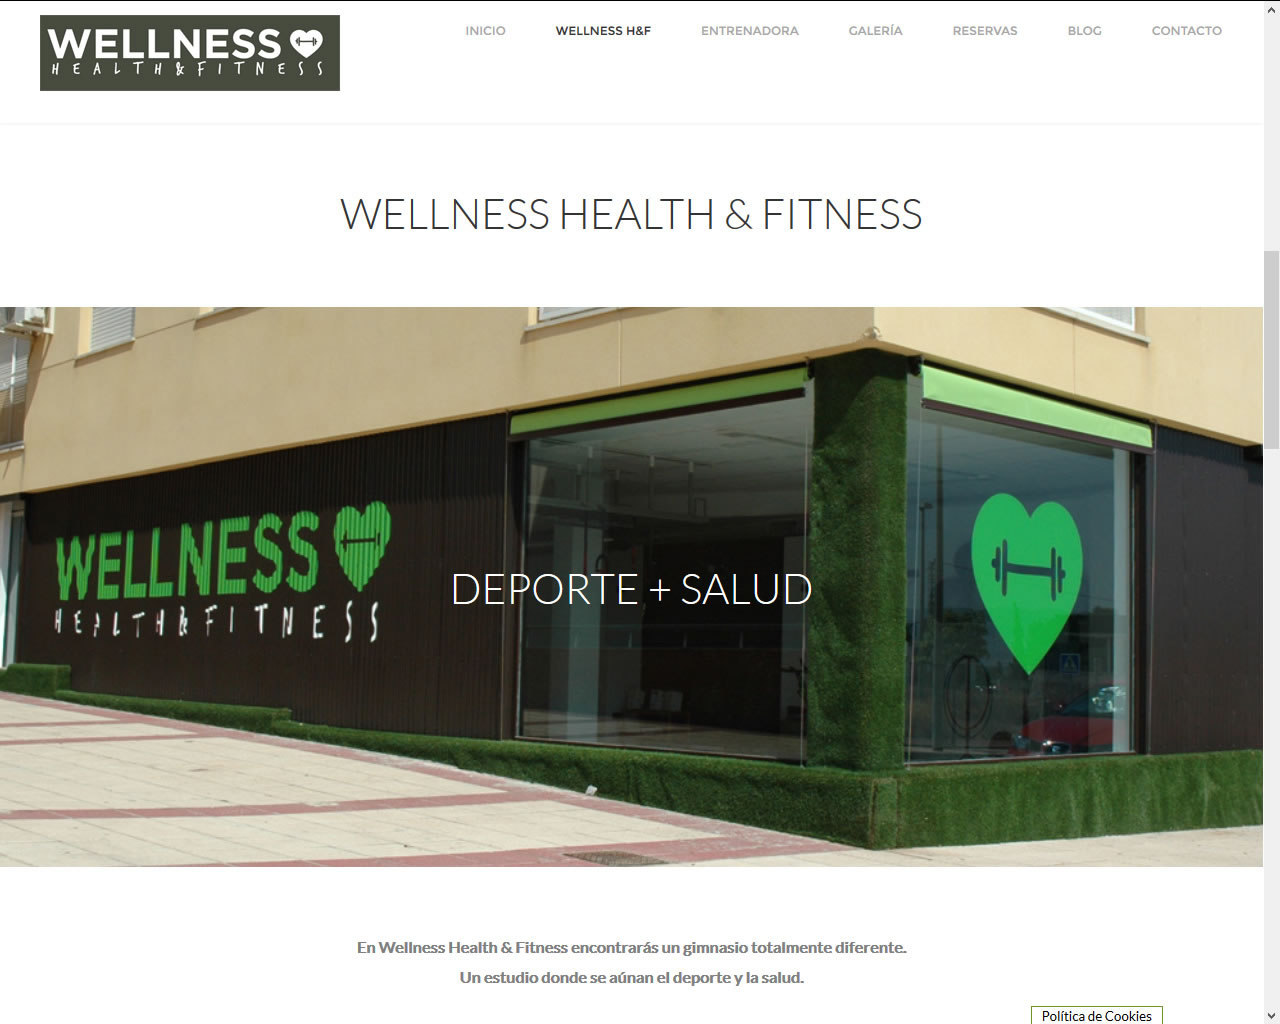 Proyectos - Wellnes, Health & Fitness